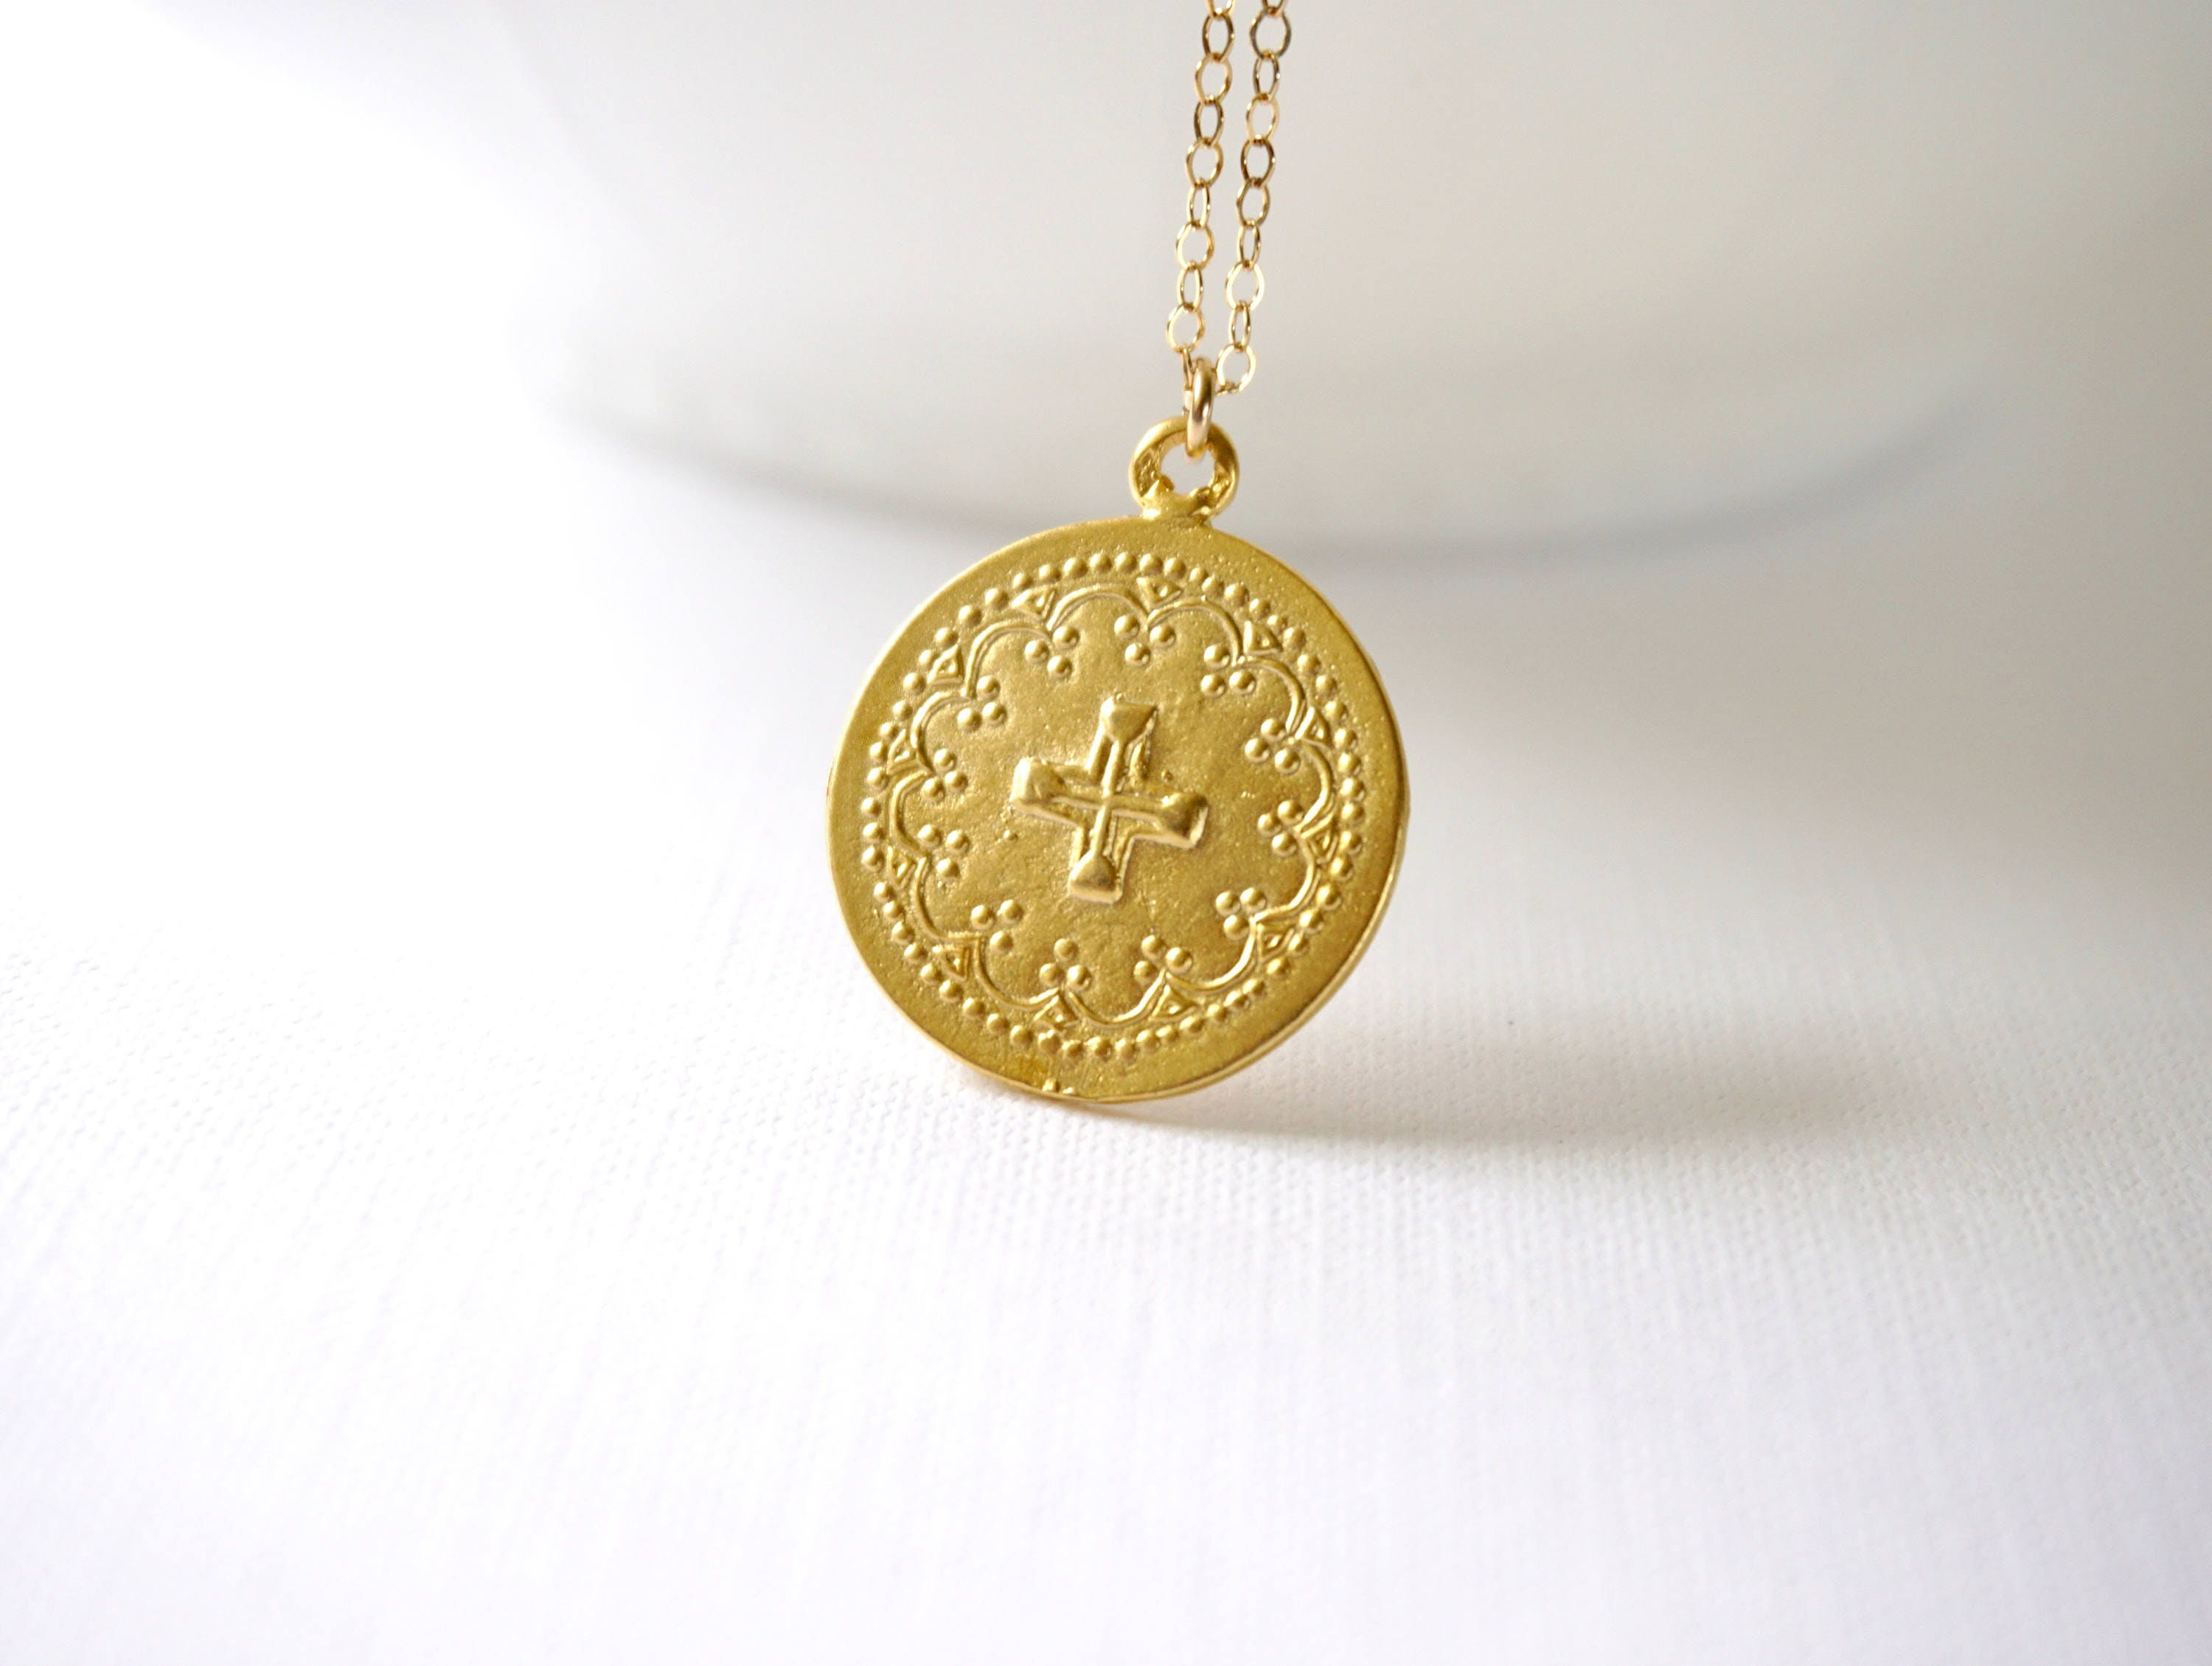 qlt p hei medallion spin chain pendant gold yellow wid angel prod